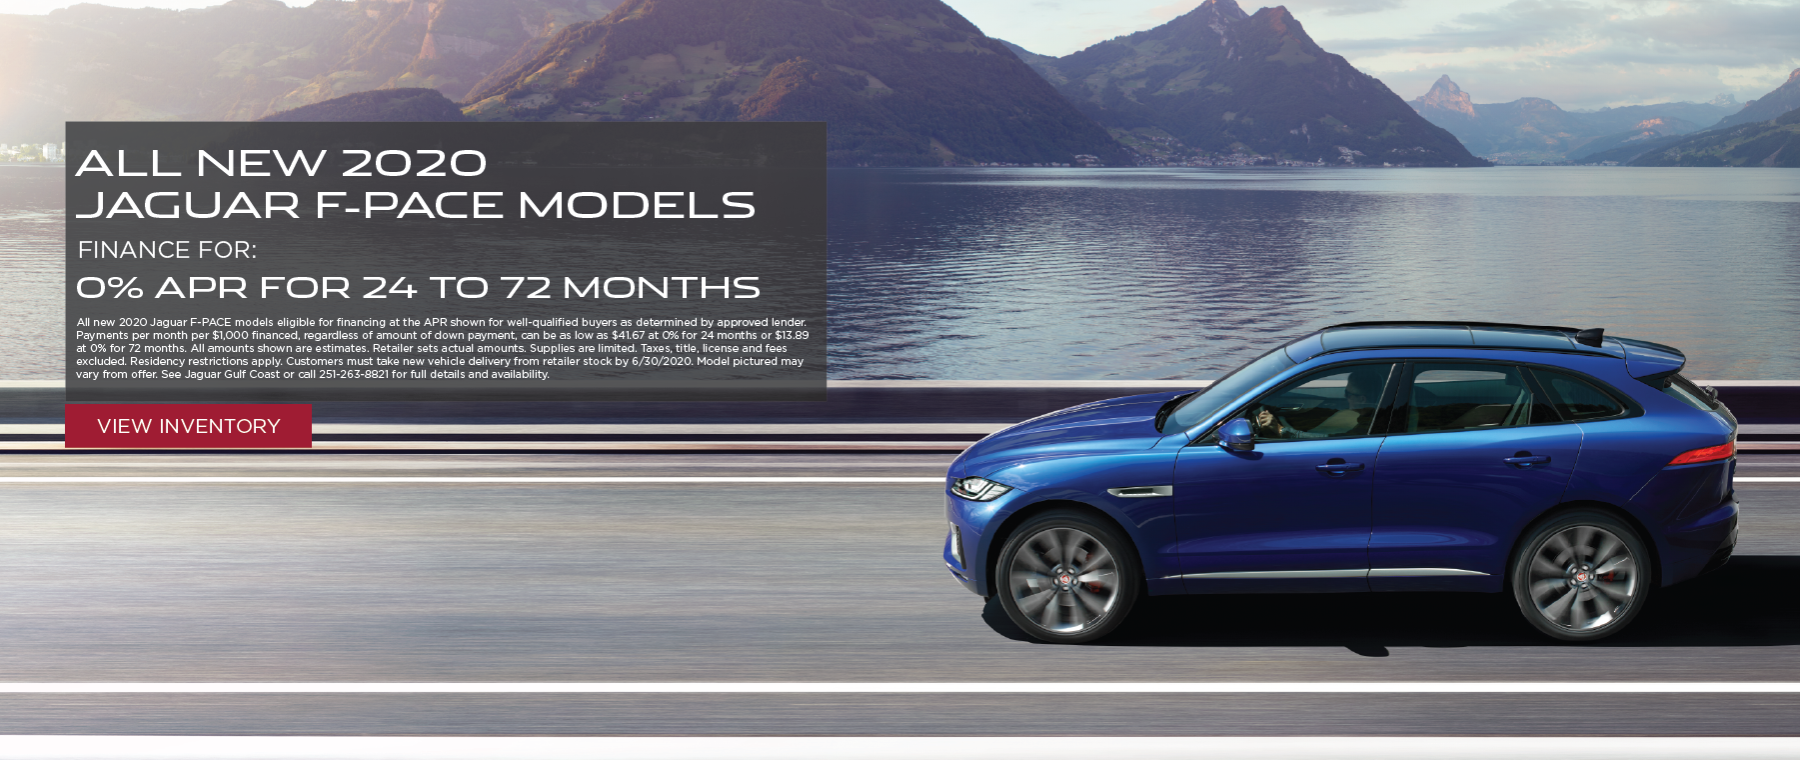 Blue 2020 Jaguar F-PACE on road in front of mountains and lake. 0% APR for 24 – 72 months on all 2020 Jaguar F-PACE models. All new 2020 Jaguar F-PACE models eligible for financing at the APR shown for well-qualified buyers as determined by approved lender. Payments per month per $1,000 financed, regardless of amount of down payment, can be as low as $41.67 at 0% for 24 months or $13.89 at 0% for 72 months. All amounts shown are estimates. Retailer sets actual amounts. Supplies are limited. Taxes, title, license and fees excluded. Residency restrictions apply. Customers must take new vehicle delivery from retailer stock by 6/30/2020. Model pictured may vary from offer. See Jaguar Gulf Coast or call 251-263-8821 for full details and availability.